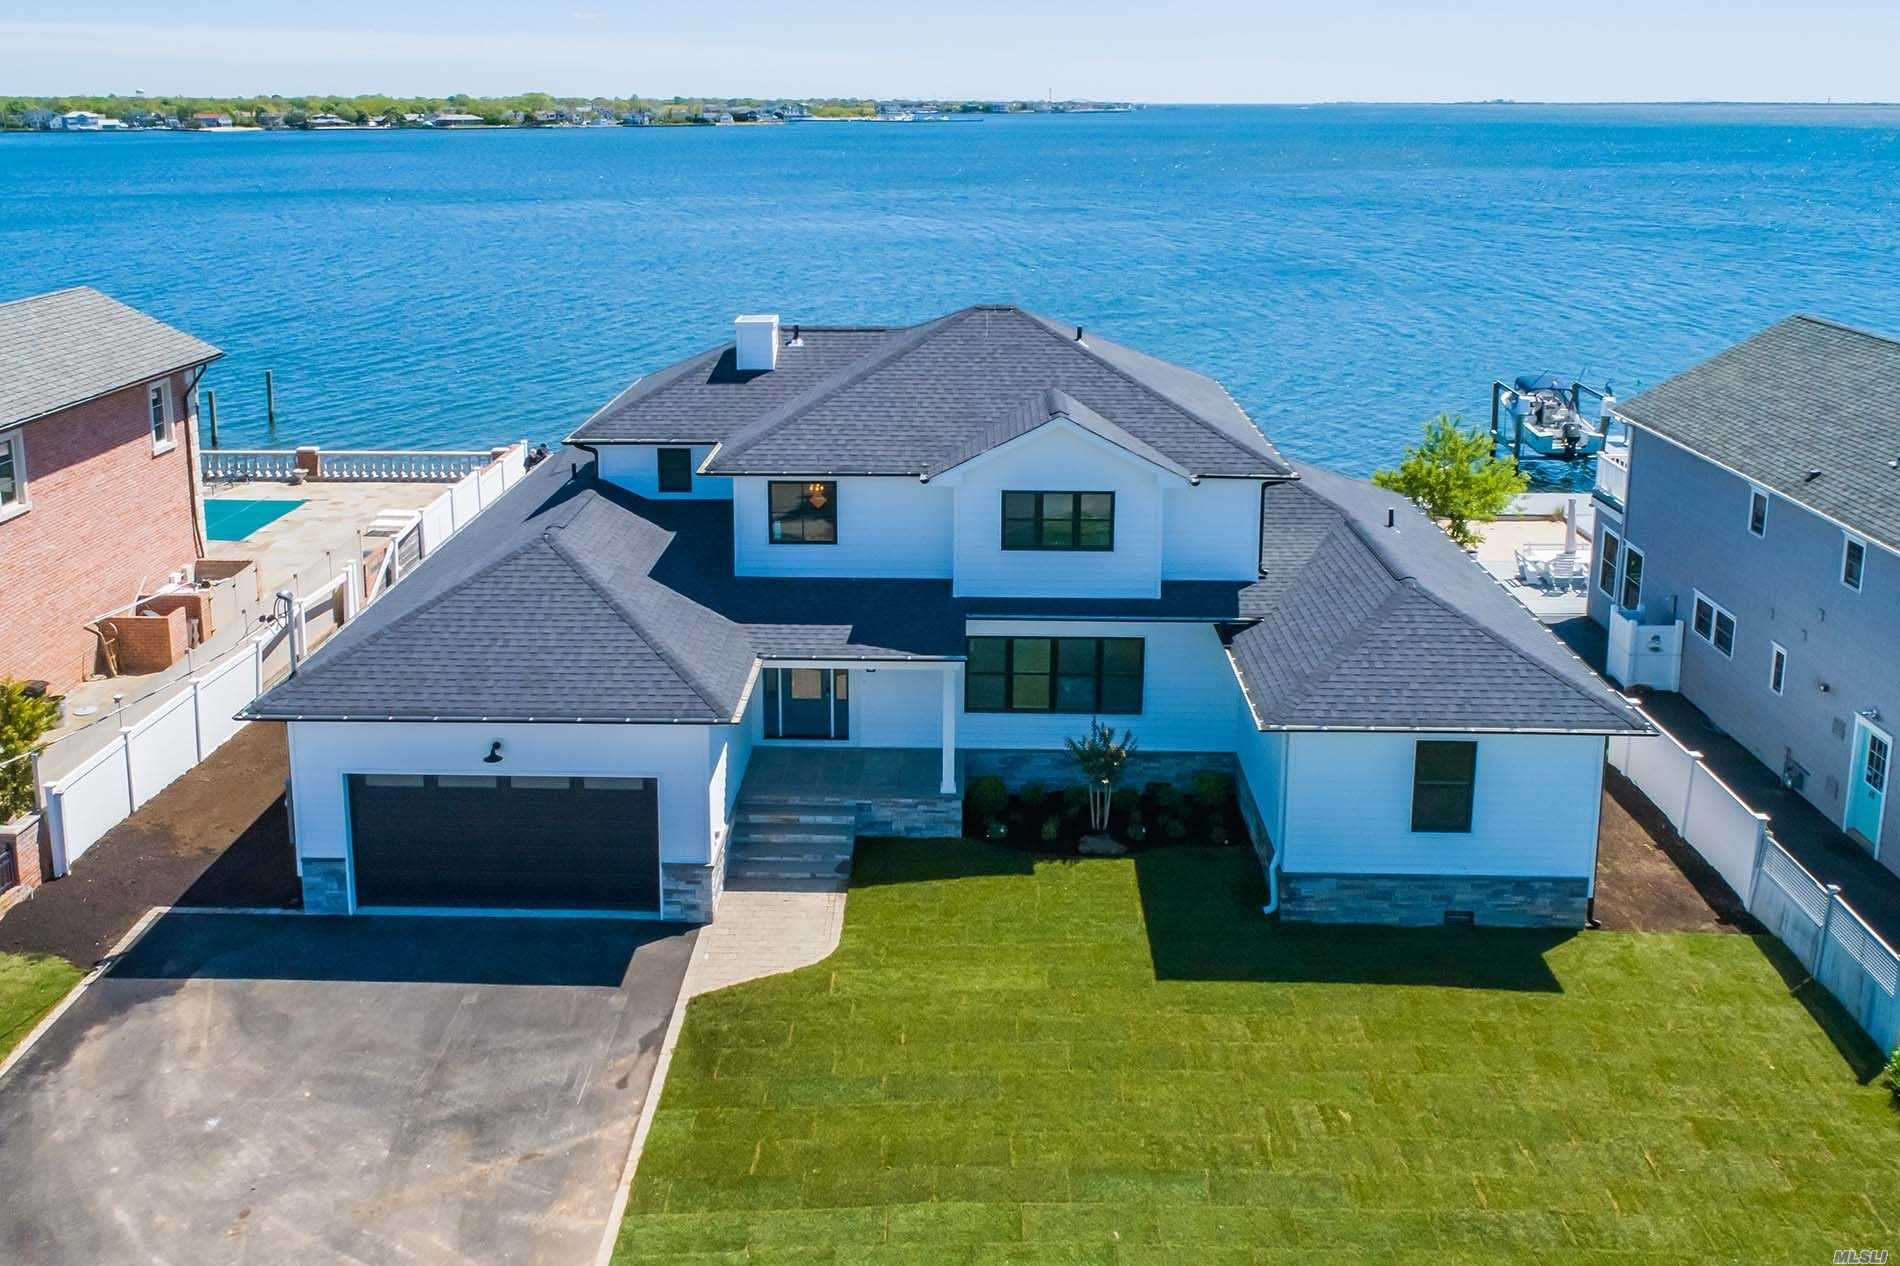 One Of A Kind, New Construction True Bayfront Home On A Huge Property Deep In The Beautiful Nassau Shores Community! Custom Designed Home Features An Open Layout, High-End Designer EIK Kitchen, Open Large Lr & Dr, Family Rm W/Frplc, Exquisite Master Suite W/Fbath-W/I Closet, 3 Add Bedrms(2 Downstrs), 3.5 Baths, wall-to-wall sliders to deck!!2 car garage. Top Quality Workmanship!.Built High Elevation.Stunning Bay Views From Every Room!New Construction Bayfront, Wow!!!